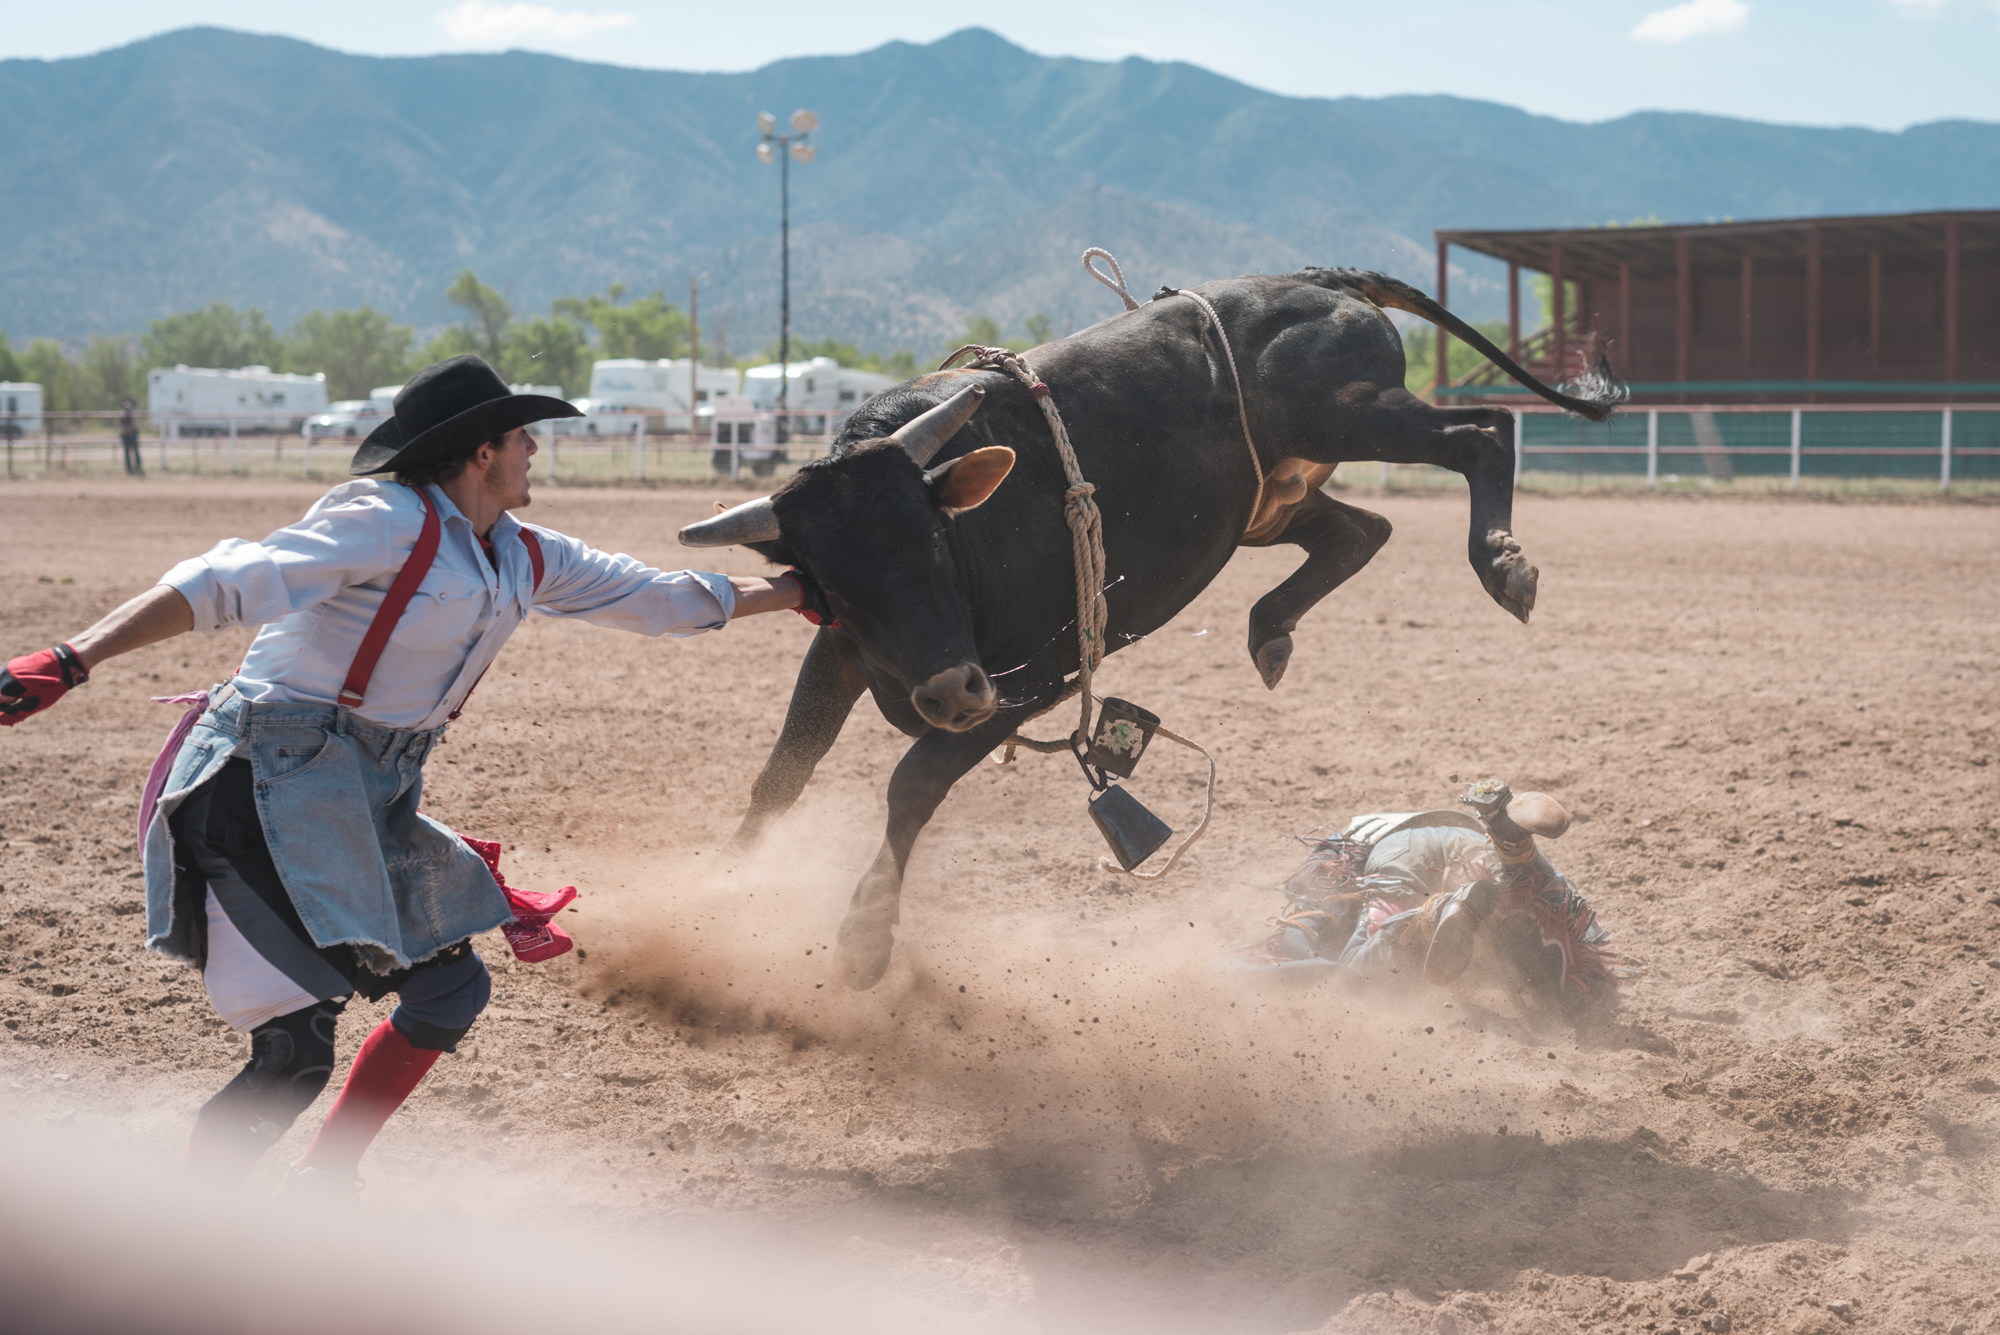 Rodeo_selects-4619.jpg